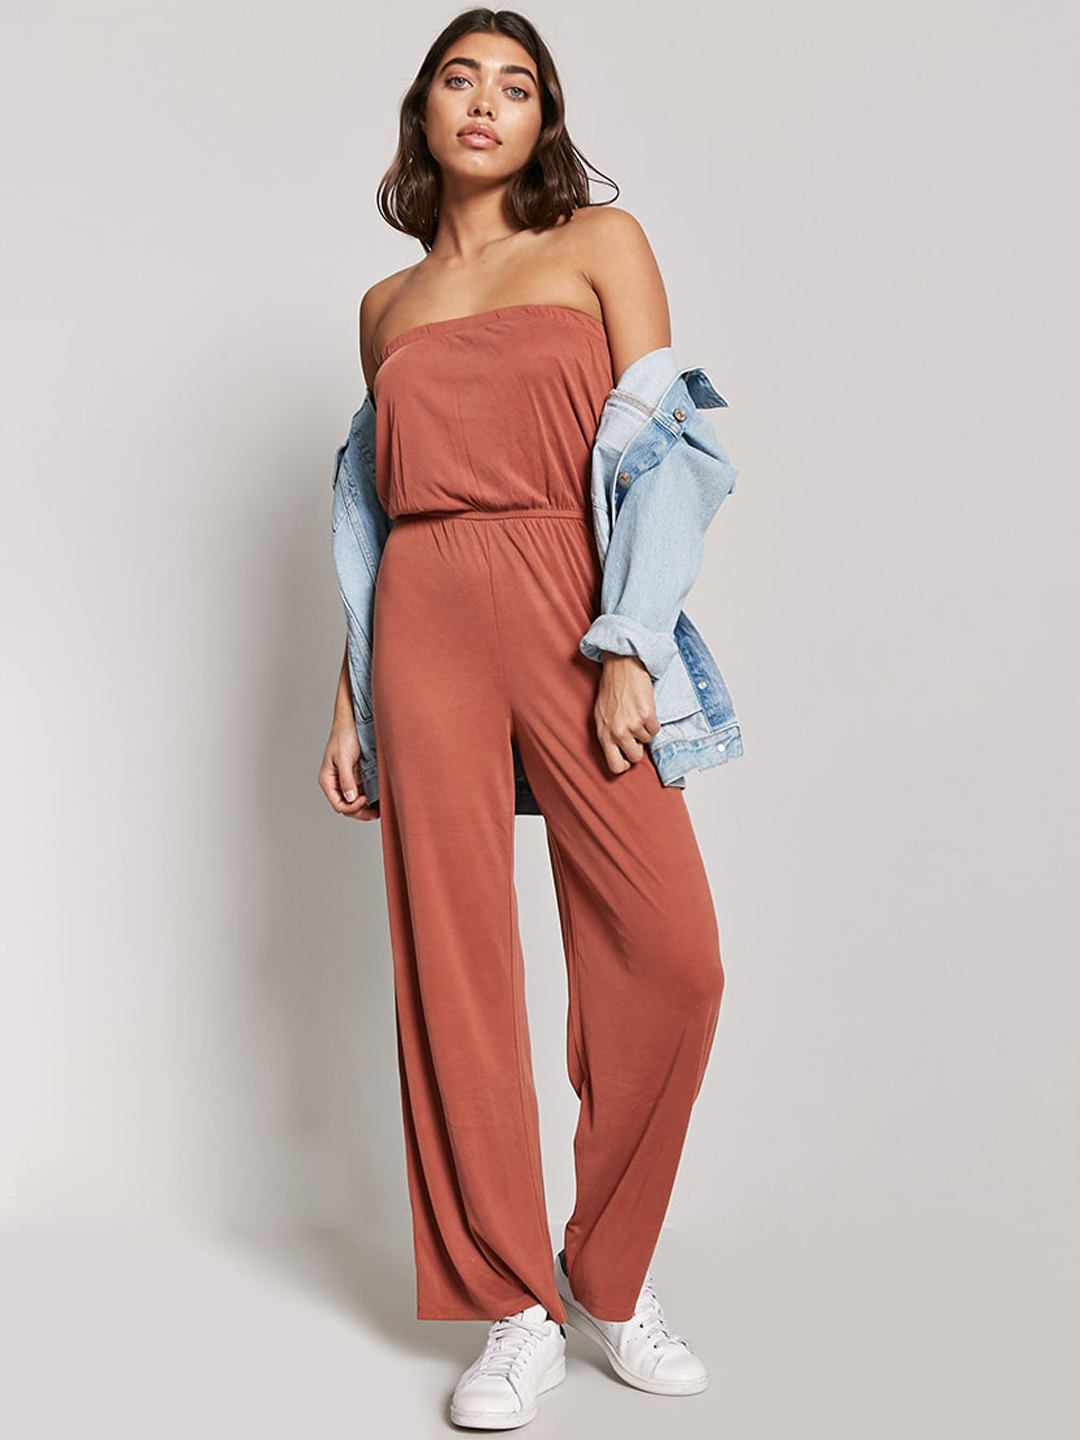 8a1fb1c03be Buy FOREVER 21 Rust Brown Solid Tube Jumpsuit - Jumpsuit for Women ...